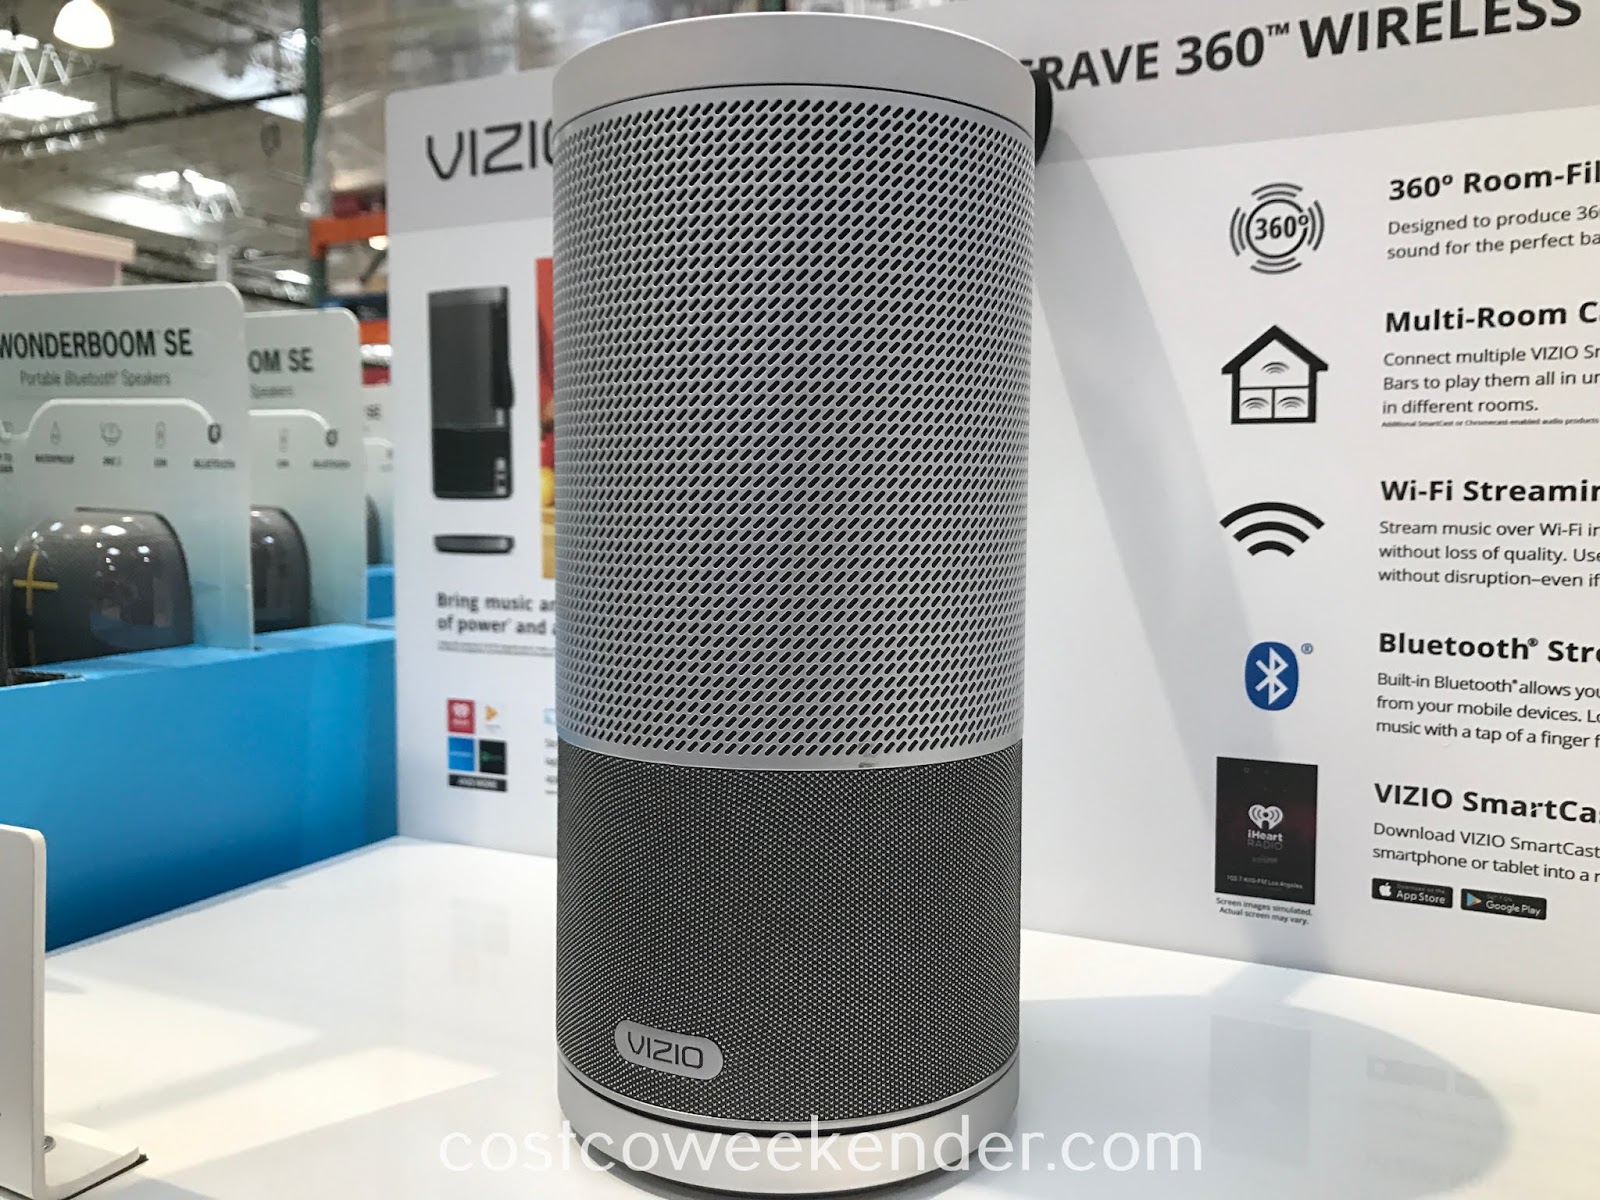 Easily stream music all around your home with the Vizio Crave 360 SmartCast Speaker